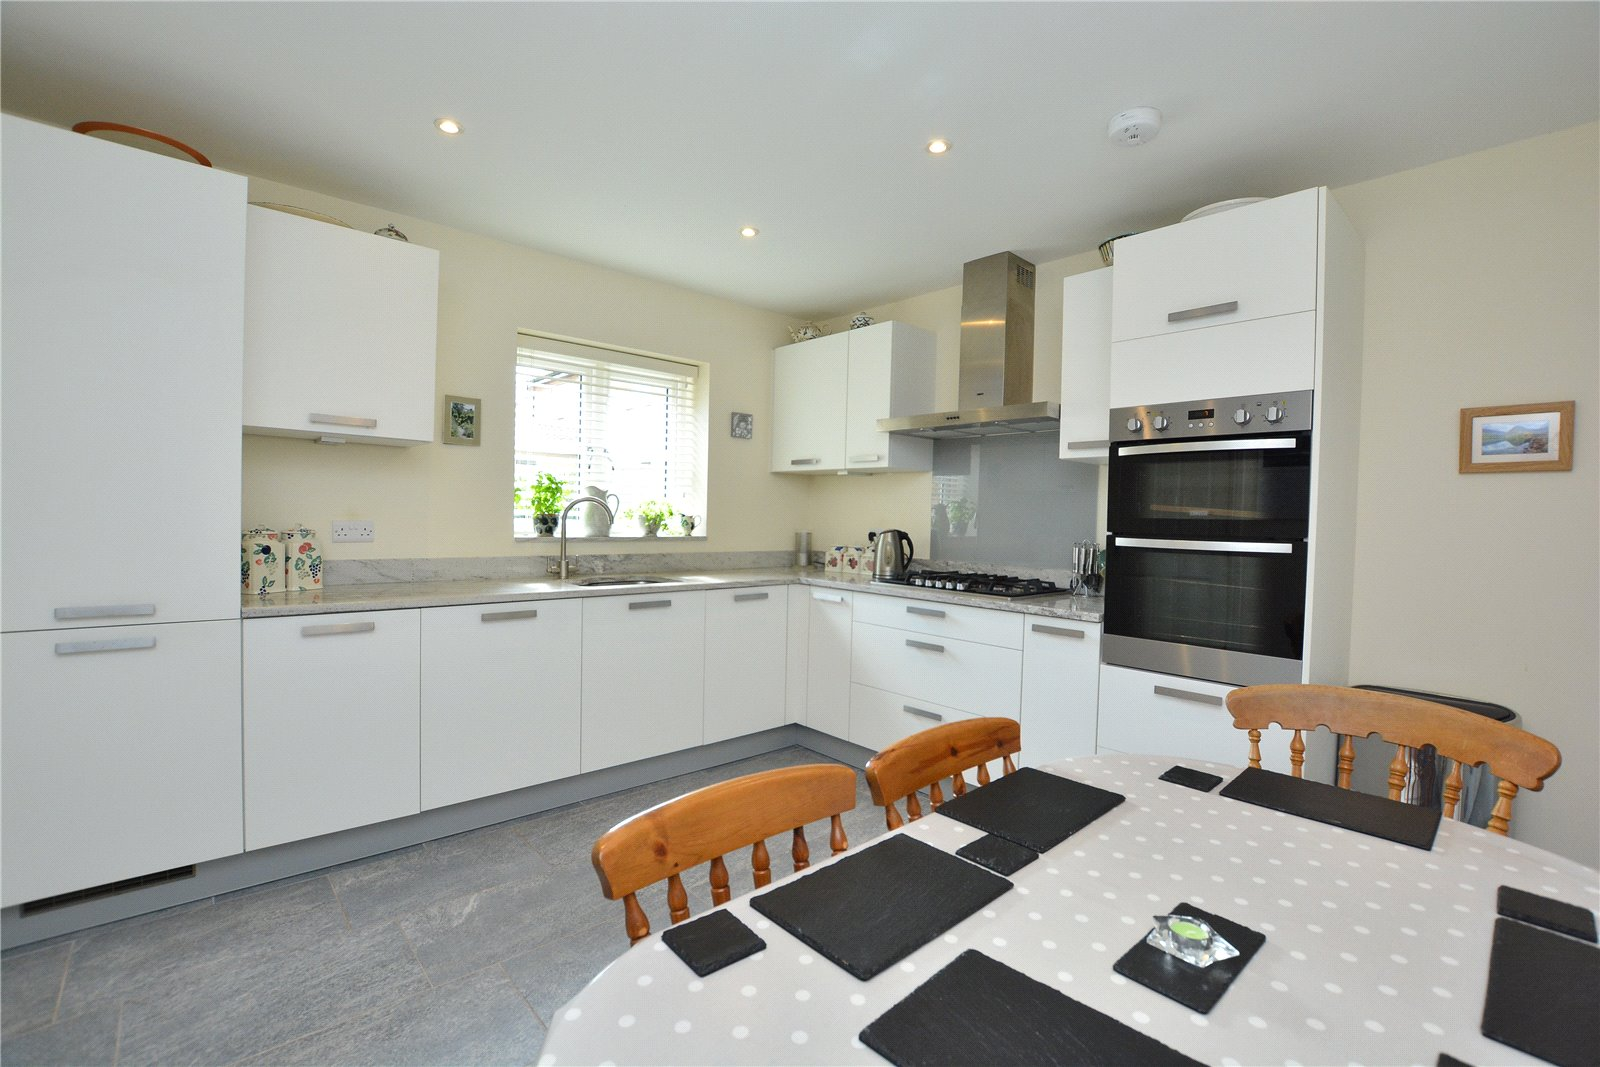 property for sale in Bardsey, interior kitchen with dining table